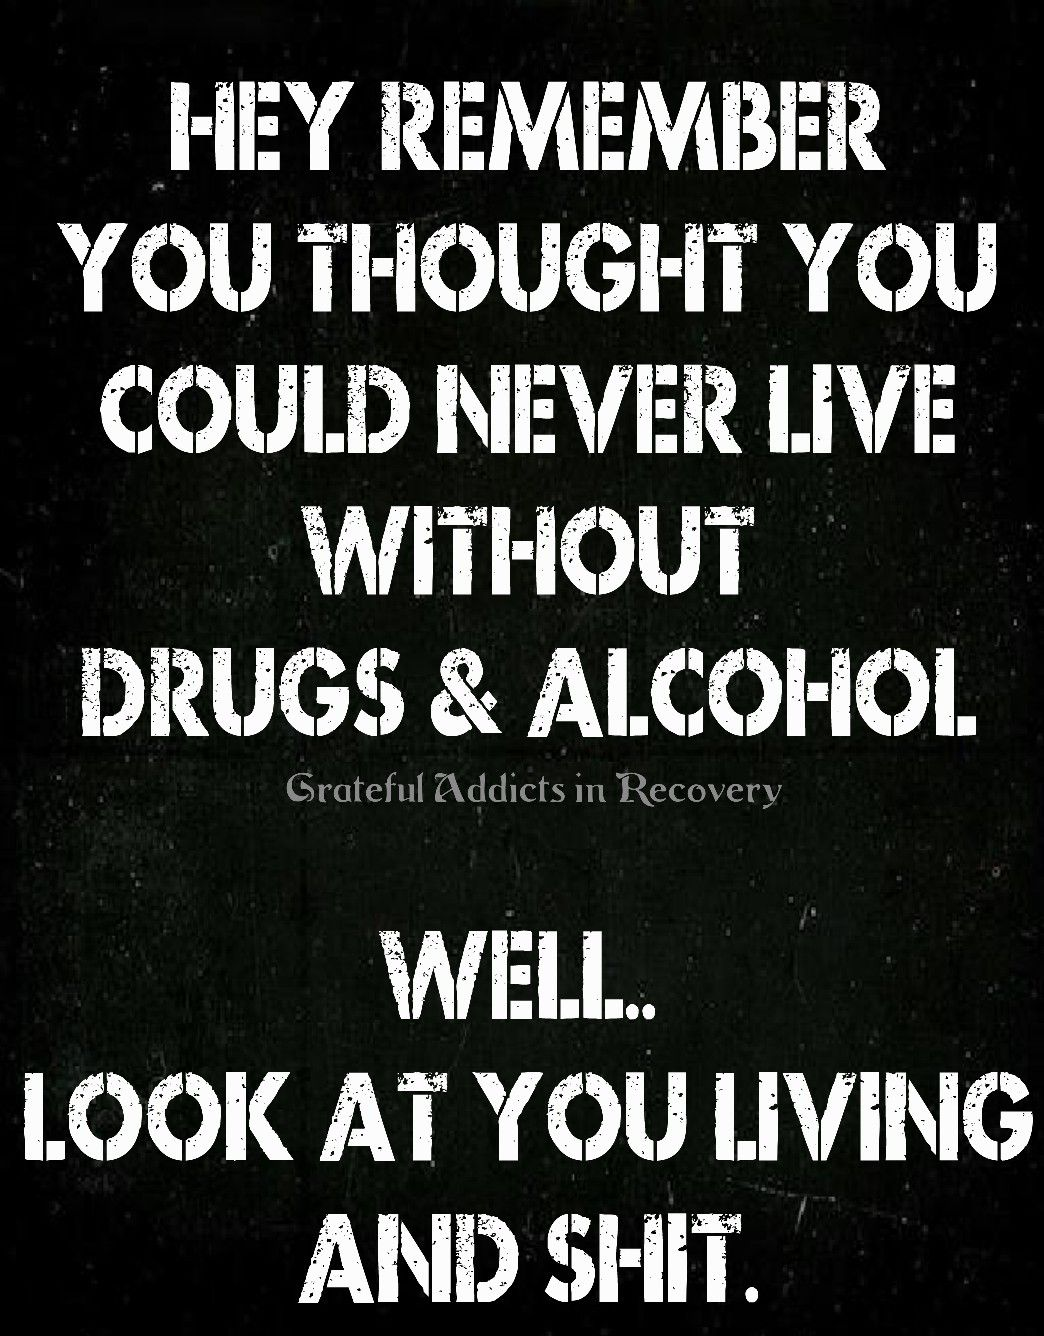 Pin on Grateful Addicts in Recovery